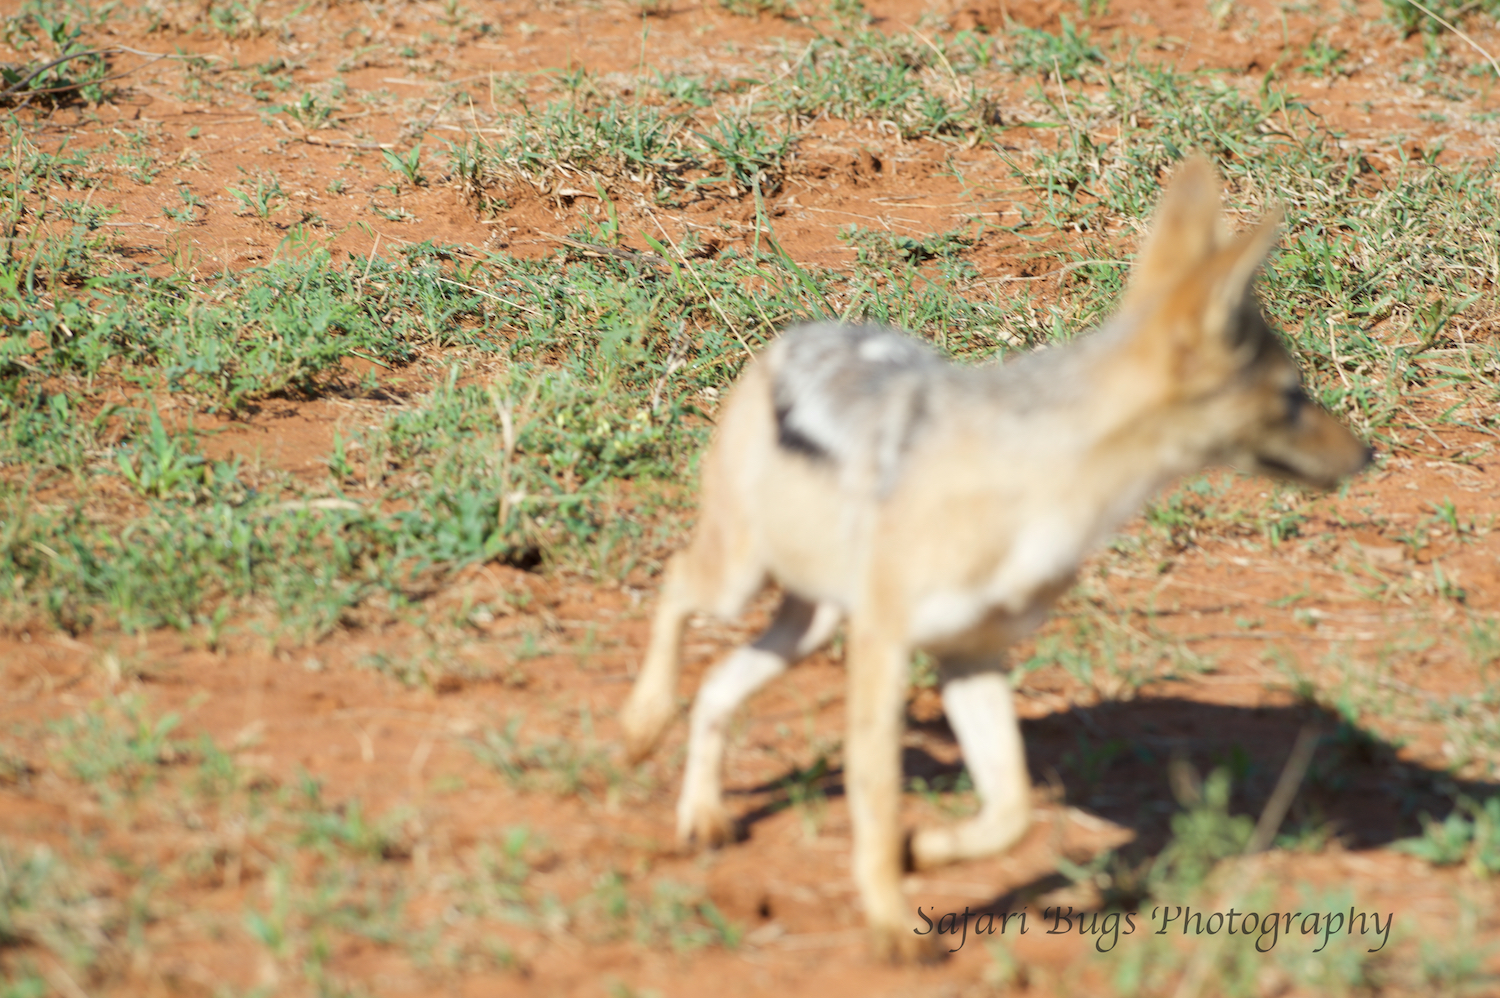 Upon seeing the lionesses on the move, the jackal double backed quite quickly to get the kill which was now unwatched by the lionesses. (not the best photo, but gets the point across)